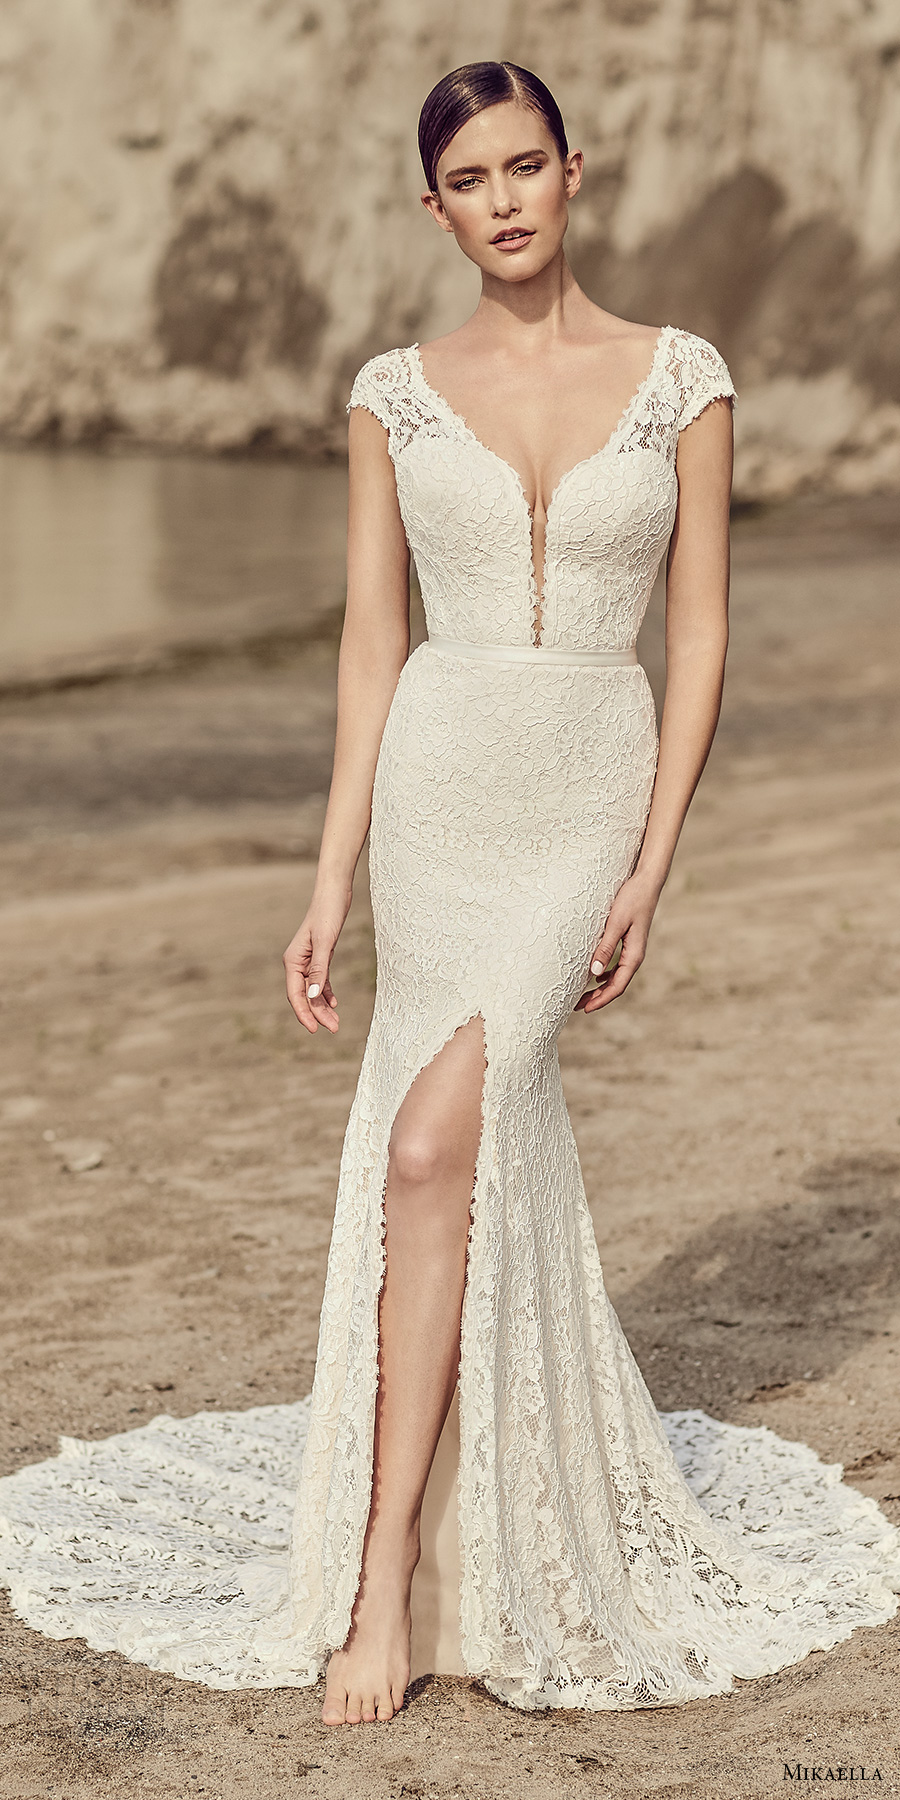 mikaella spring 2017 bridal cap sleeves plunging v neckline full embroidered middle slit elegant sheath fit flare wedding dress open low back chapel train (2116) mv